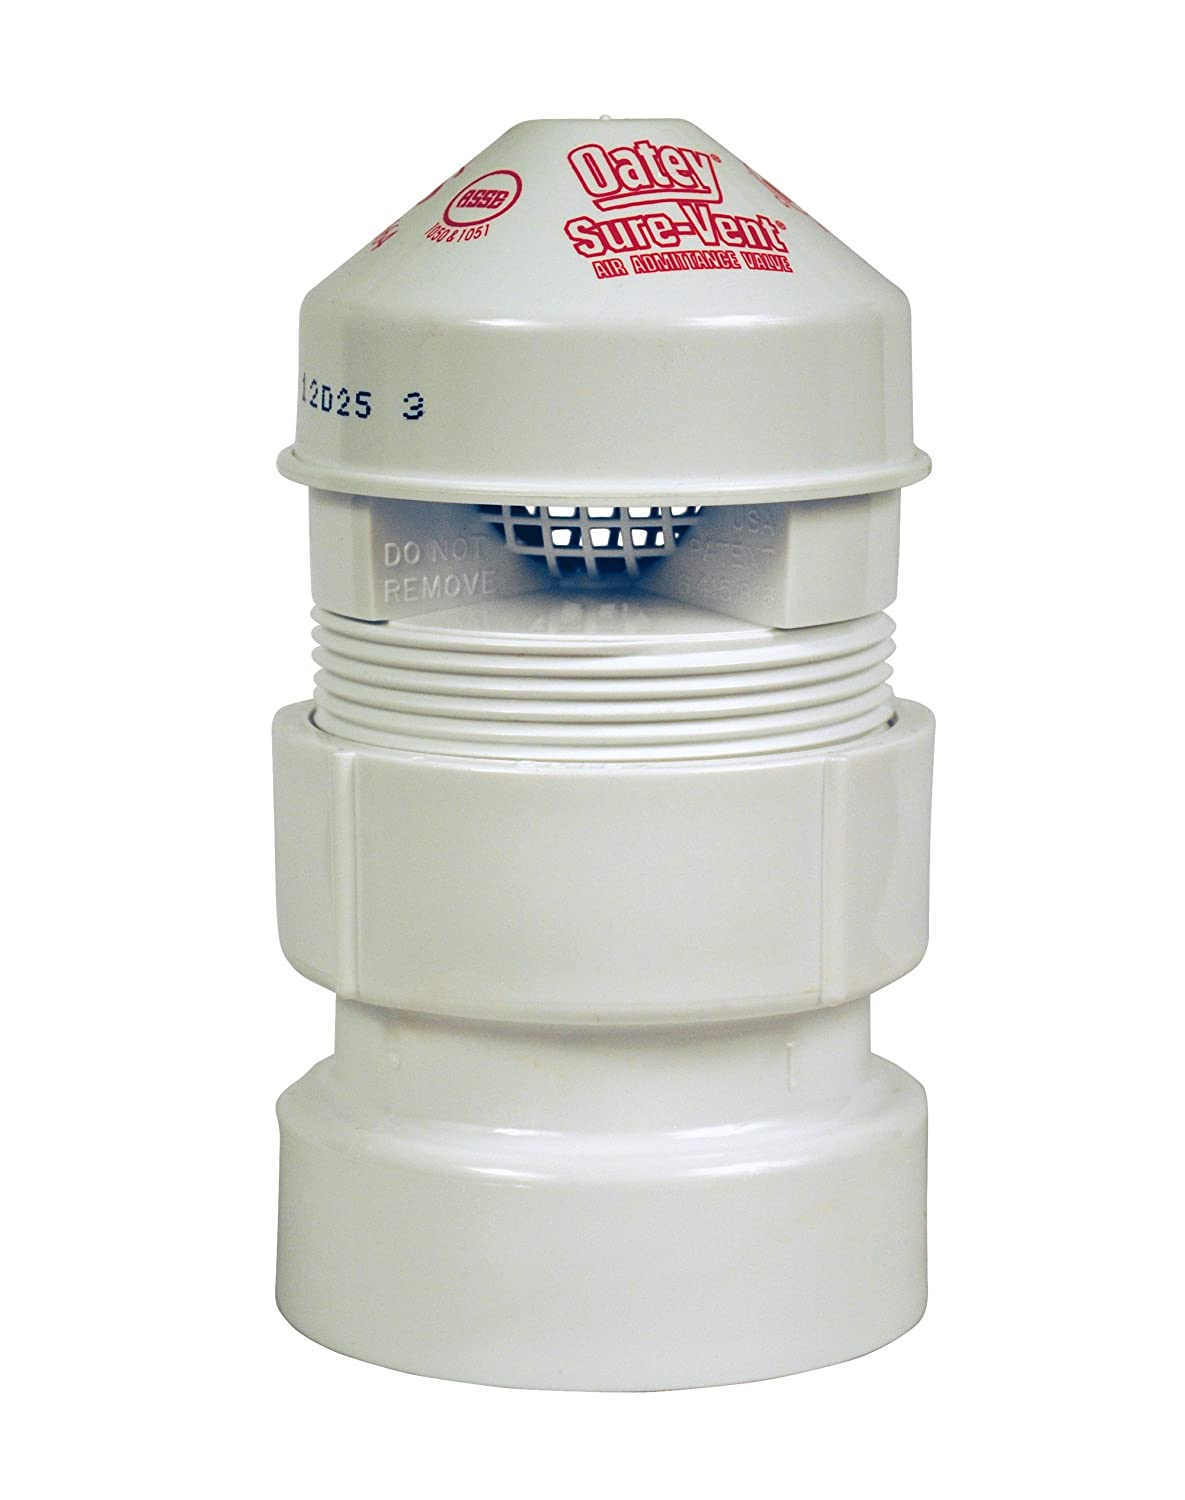 Oatey 39019 1.5 x 2 20 DFU Sure-Vent AAV Allows air to Enter The Plumbing Drainage Negative pressures Develop in The Piping System 1-1//2-Inch Black